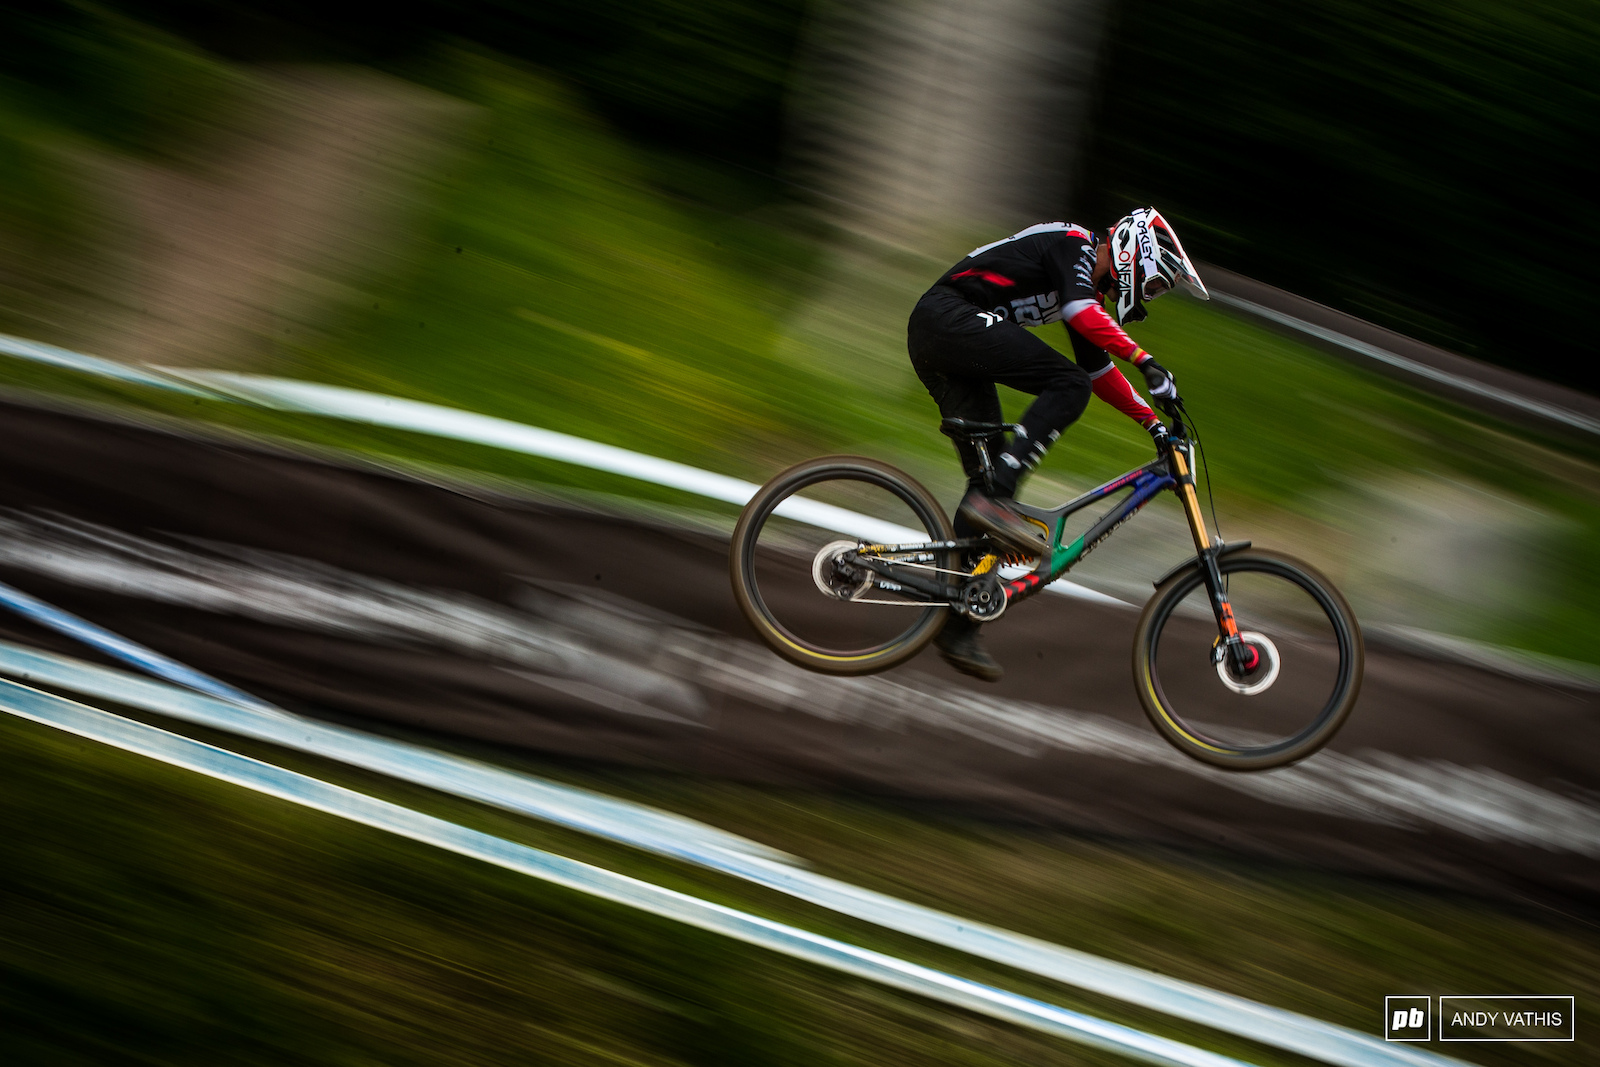 Greg Minnaar putting in pedal strokes wherever he could fit them.